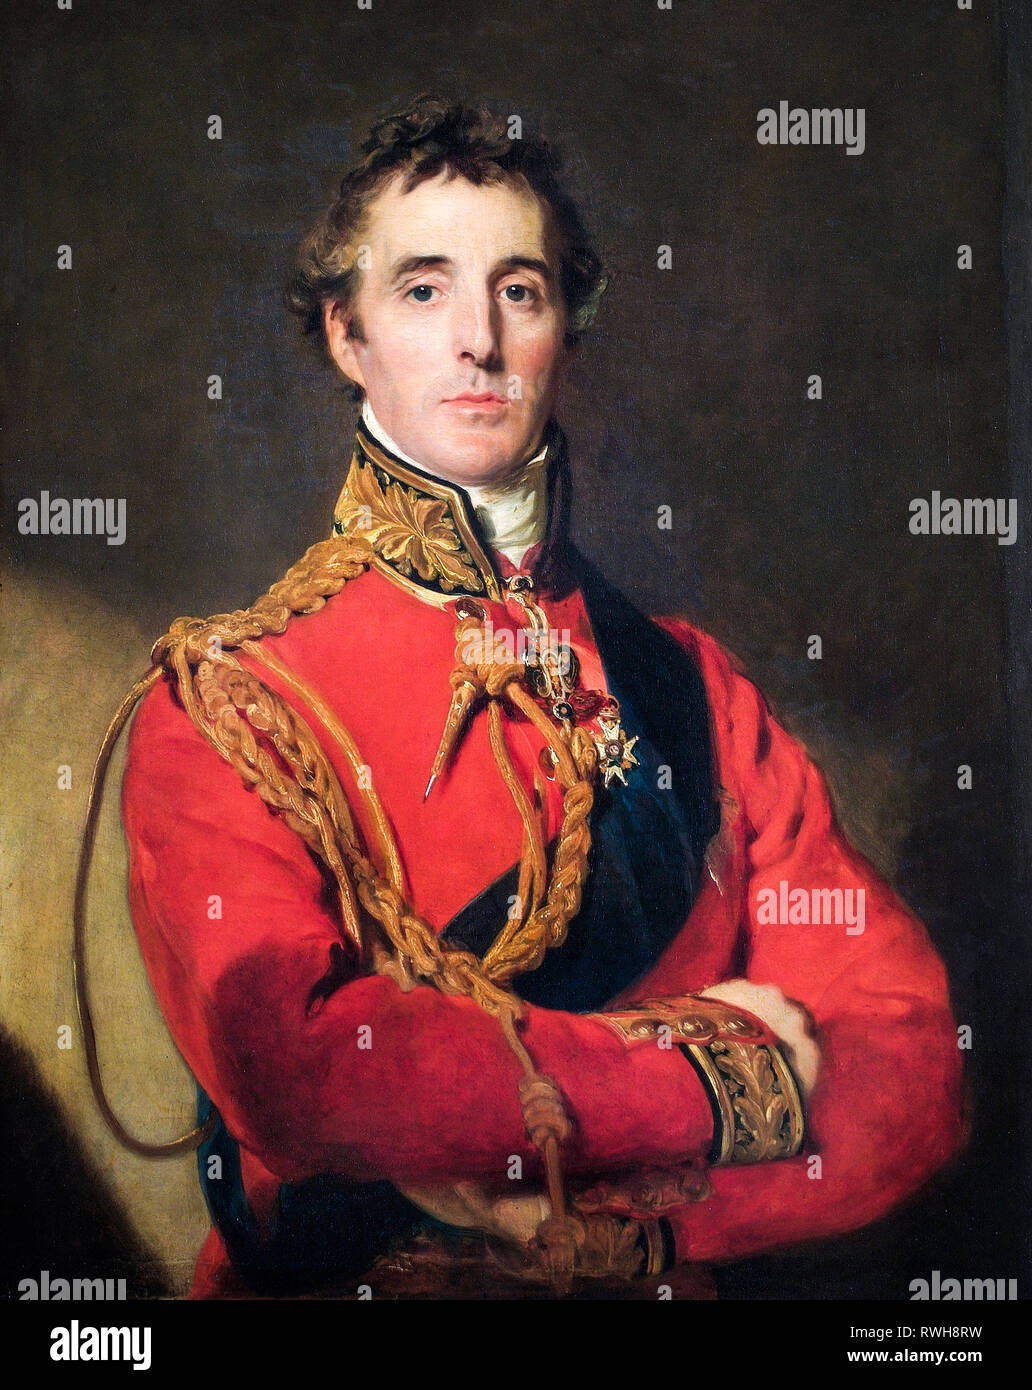 Arthur Wellesley, 1st Duke of Wellington (1769-1852), portrait painting by Thomas Lawrence, c. 1815-1816 - Stock Image